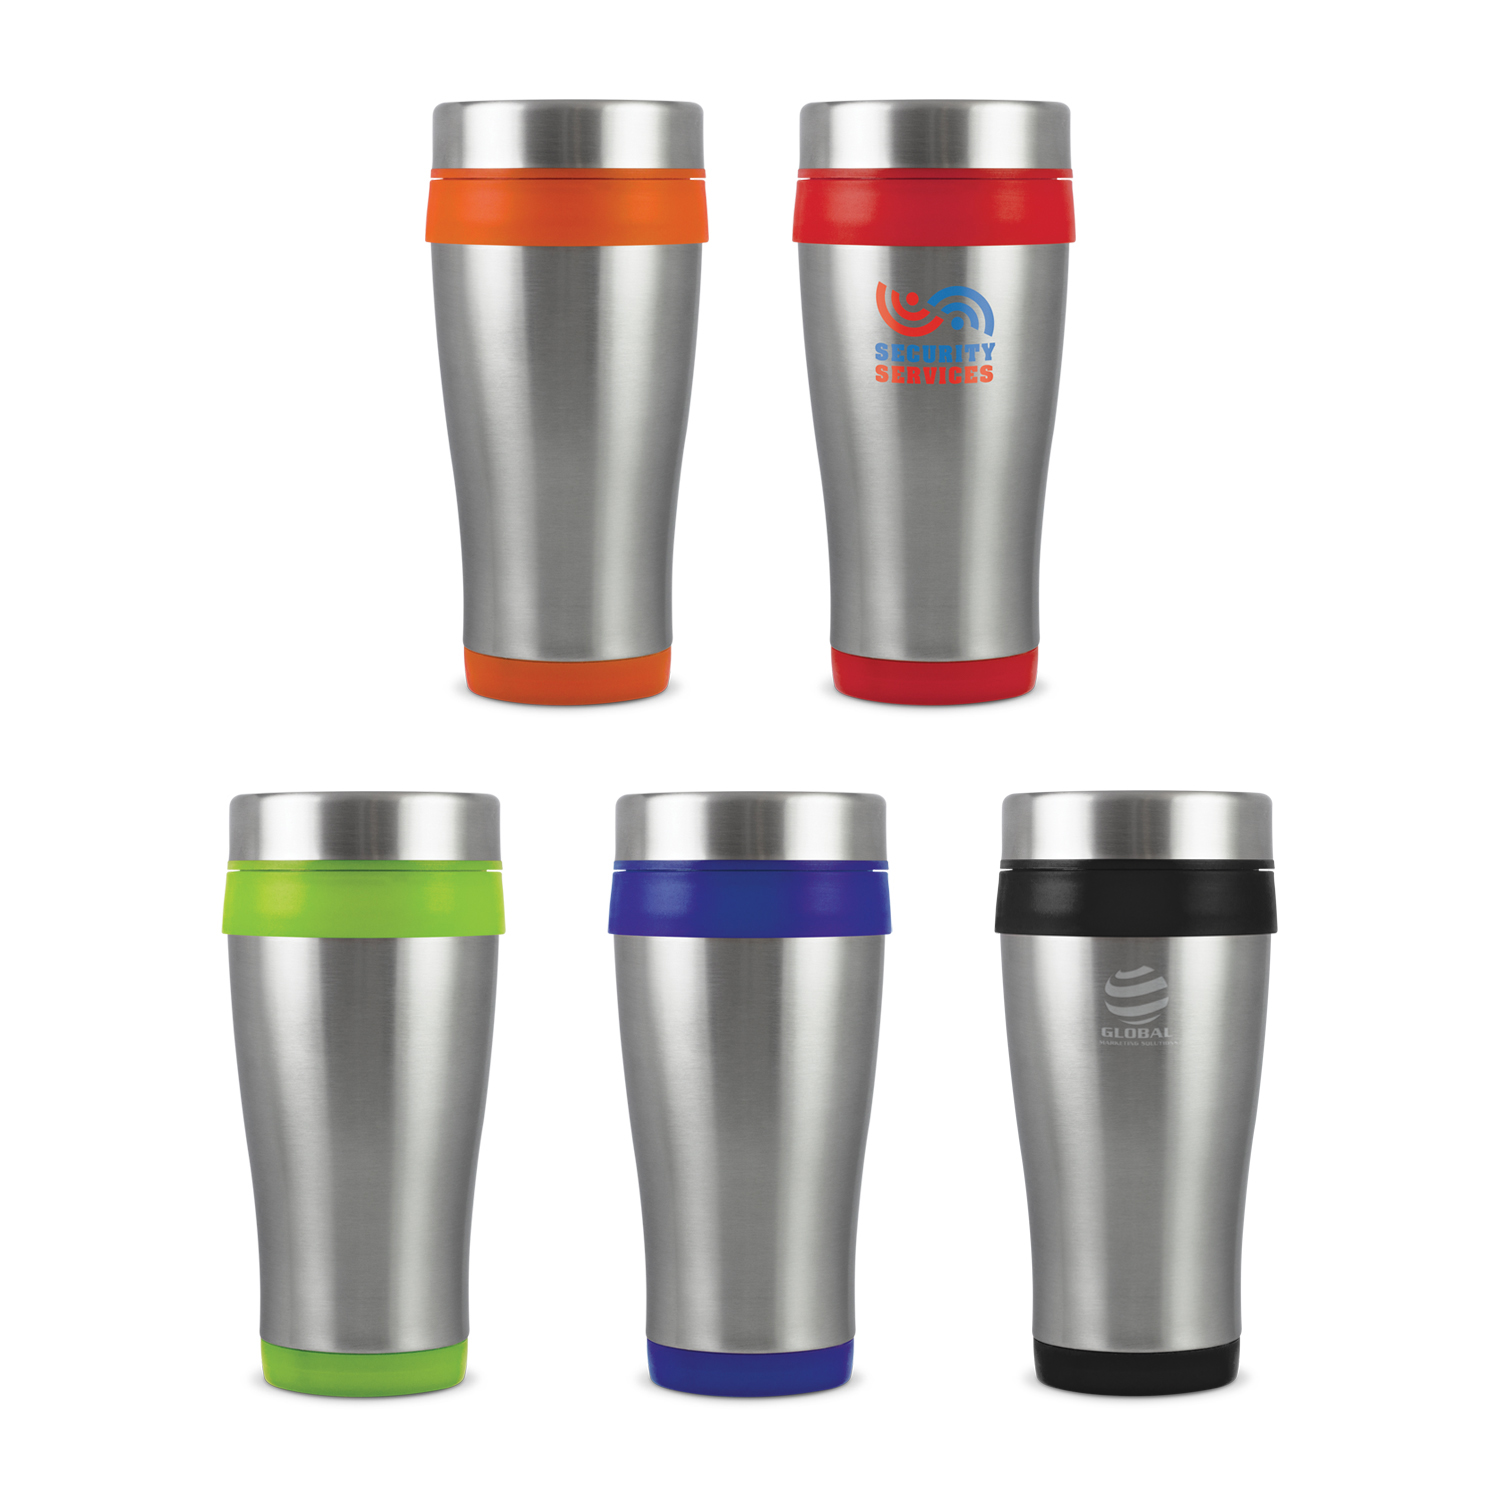 Aspen Travel Mugs